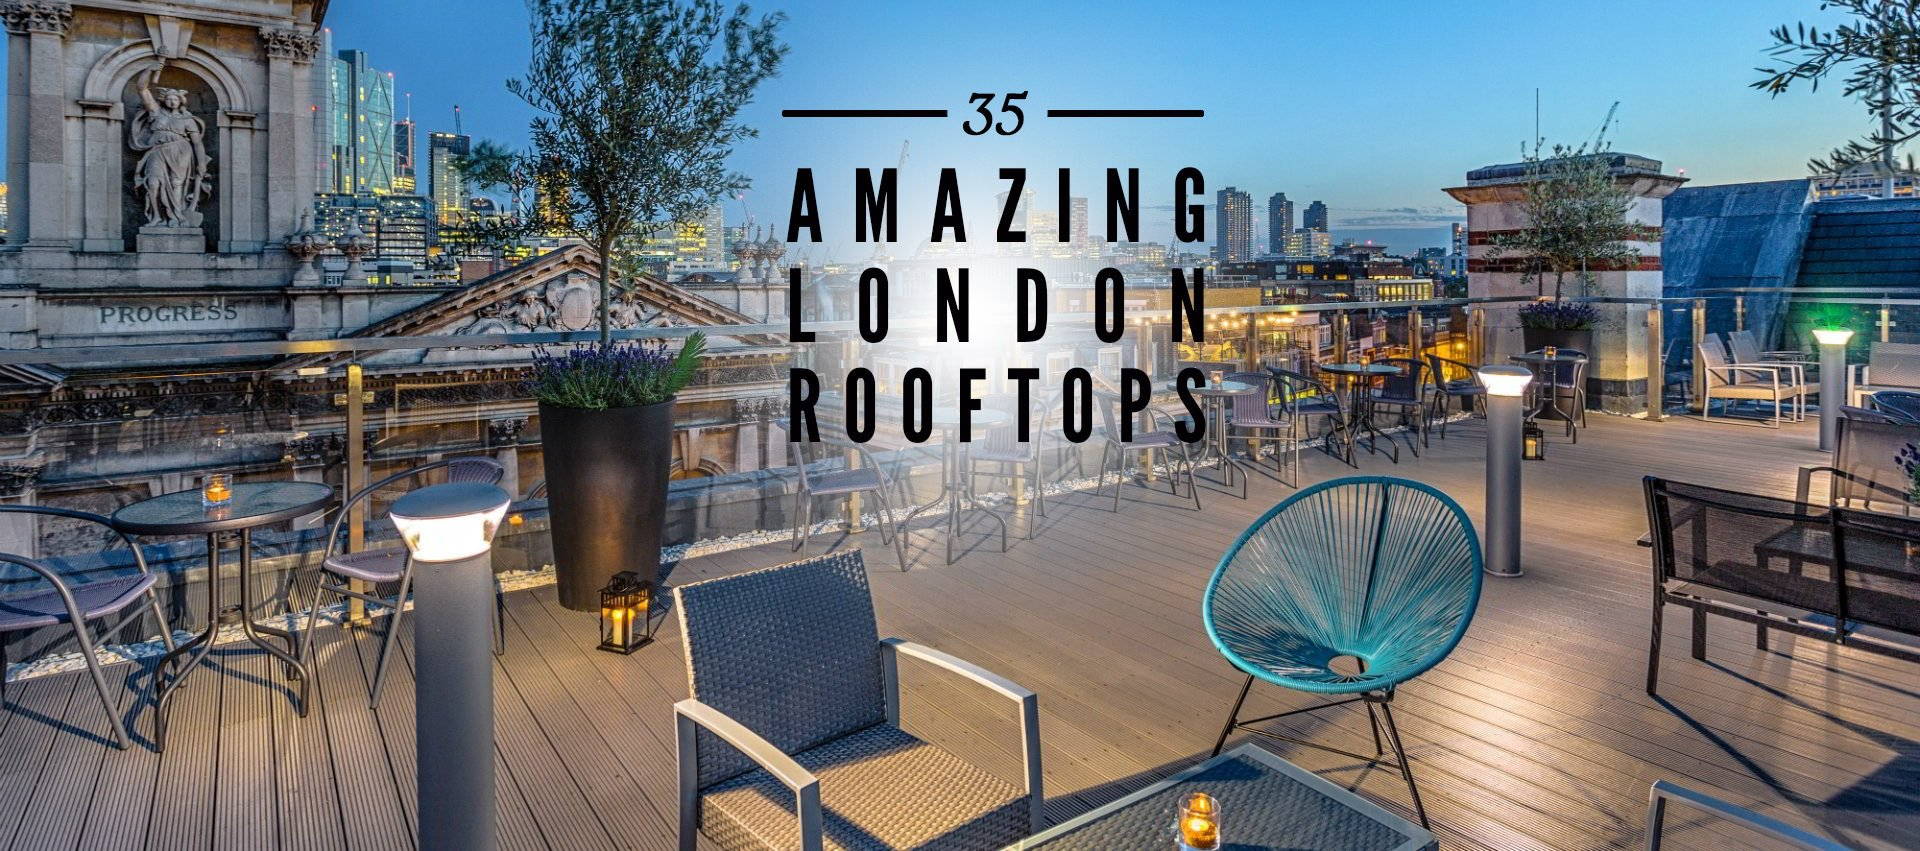 Best rooftop bars in london london bars review